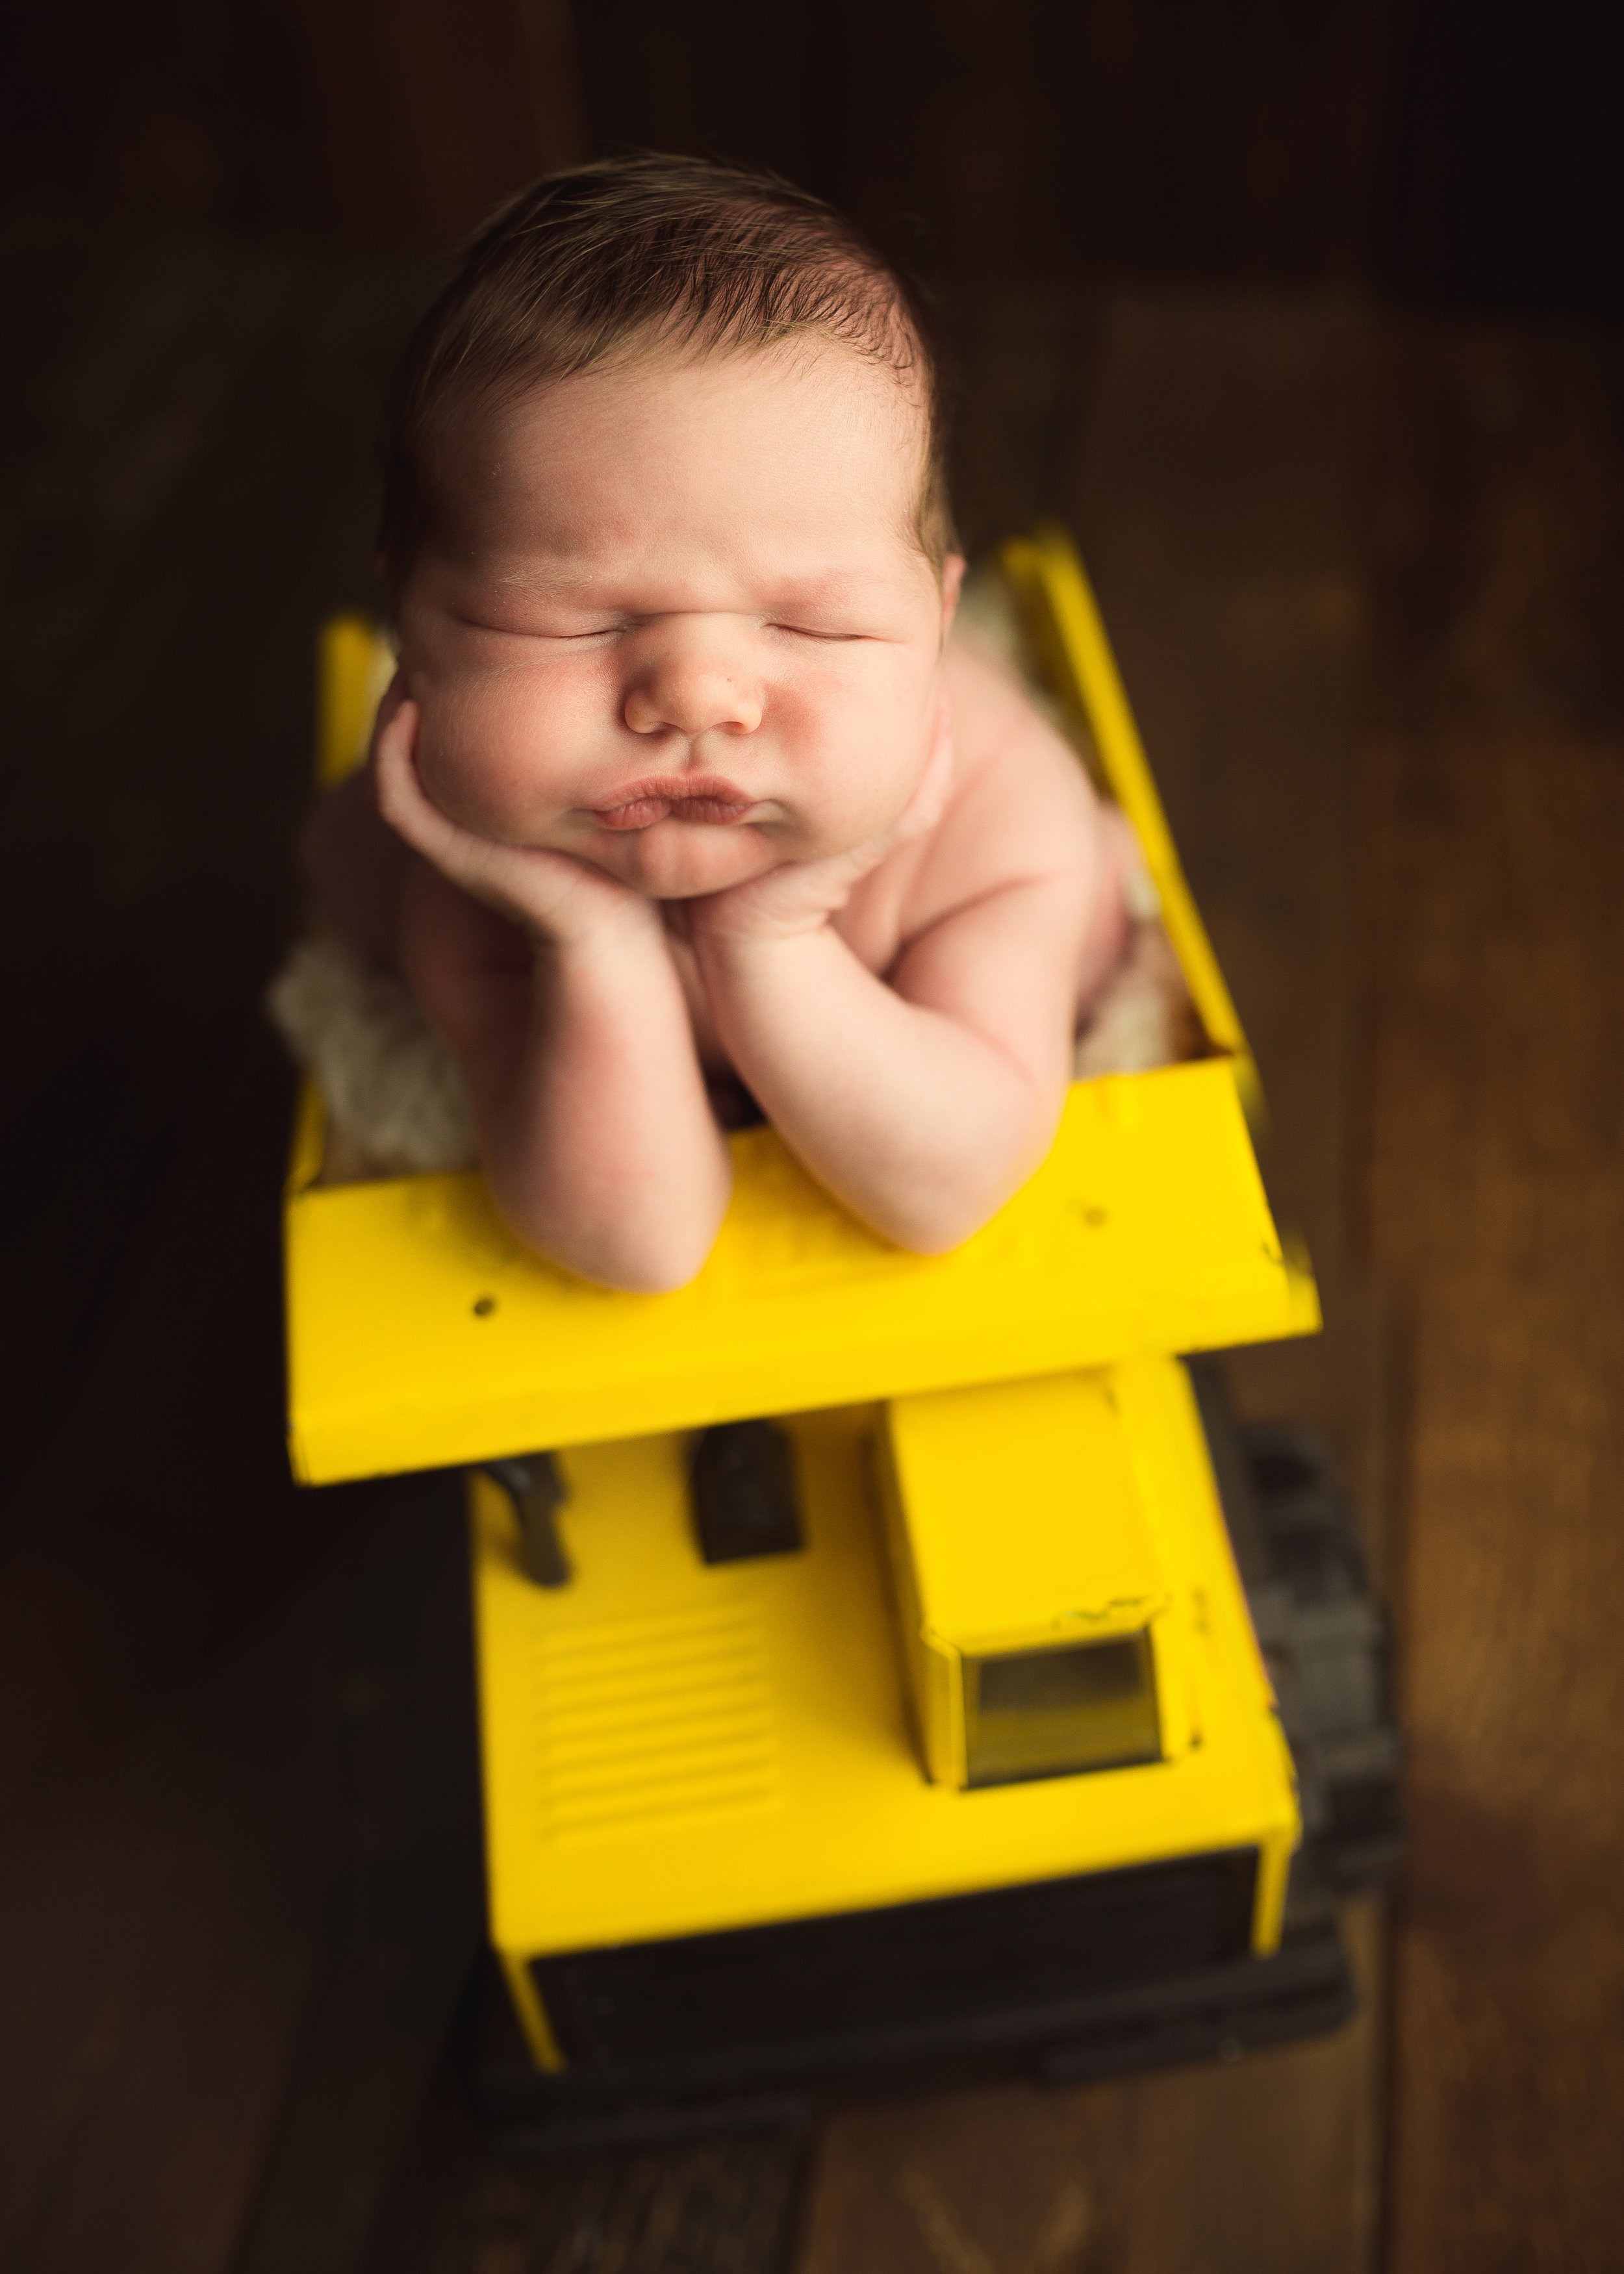 Newborn Photography Ideas and Tips